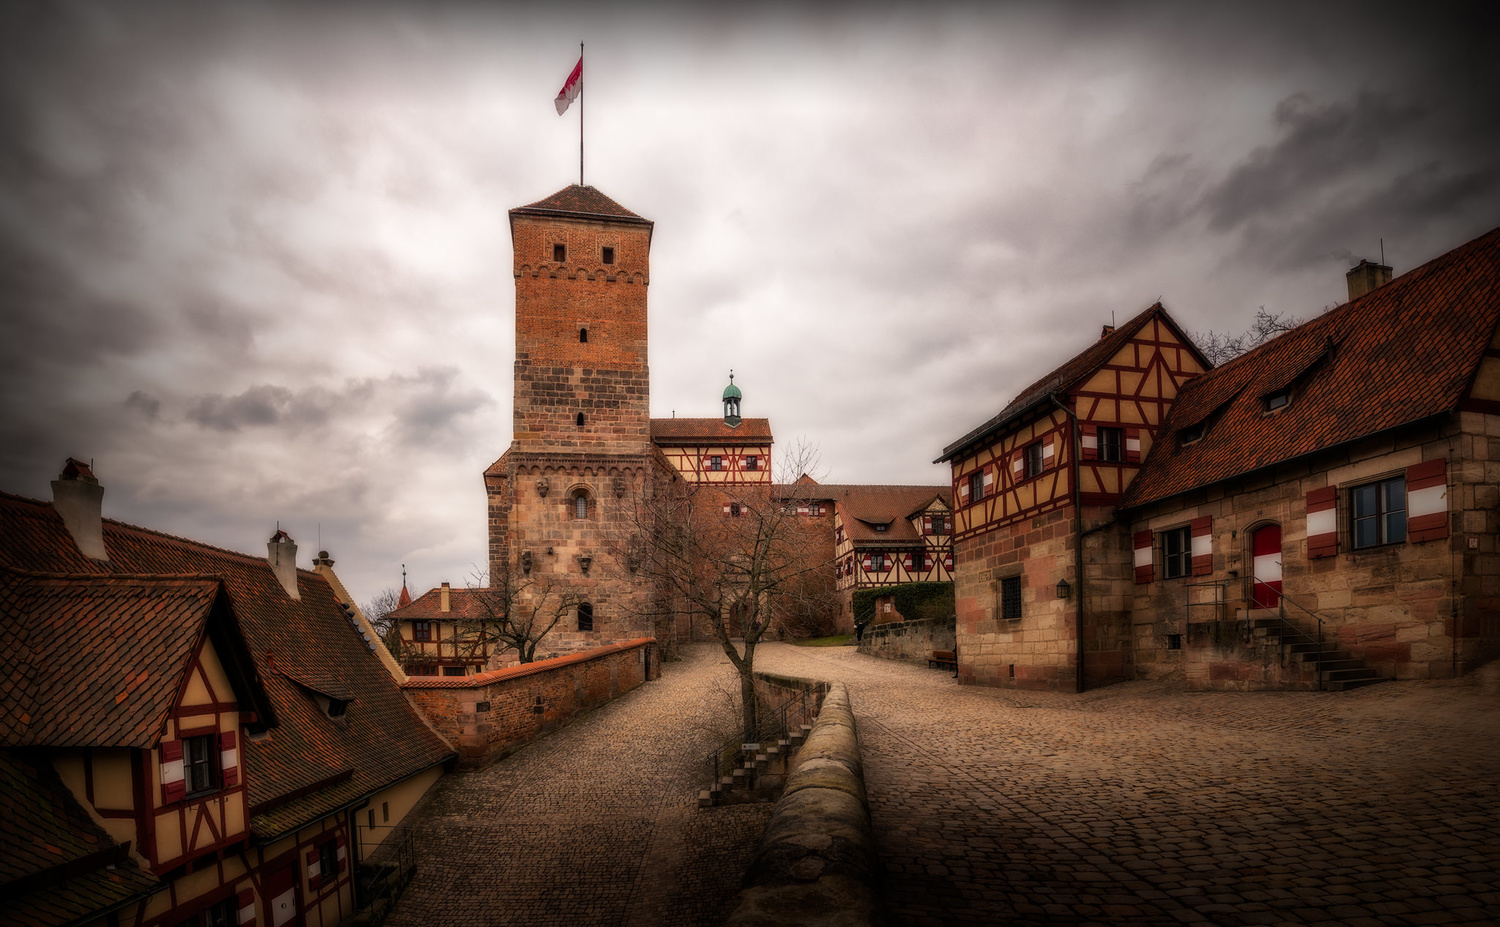 The Nuremberg Castle | Nuremberg, Germany by Nico Trinkhaus